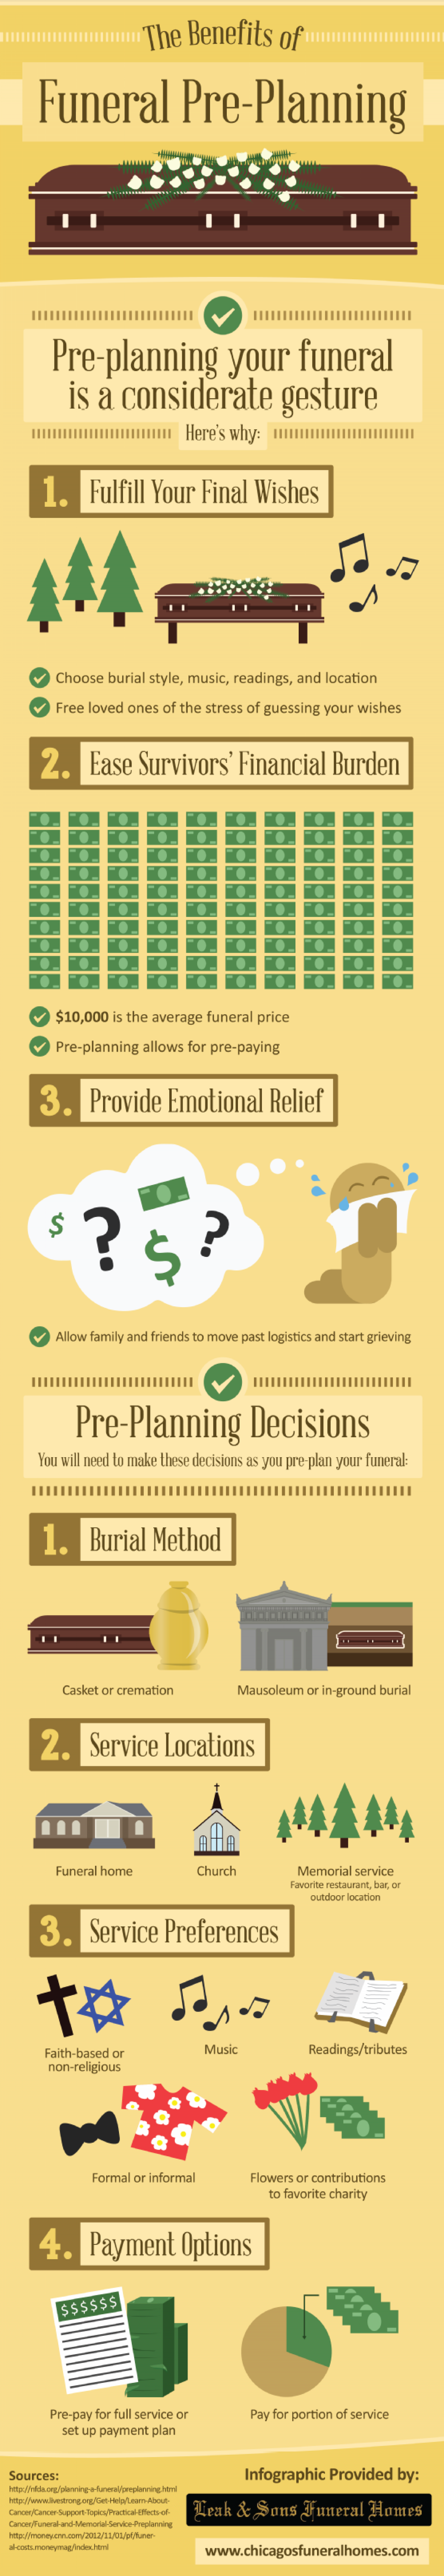 The Benefits of Funeral Pre-Planning Infographic